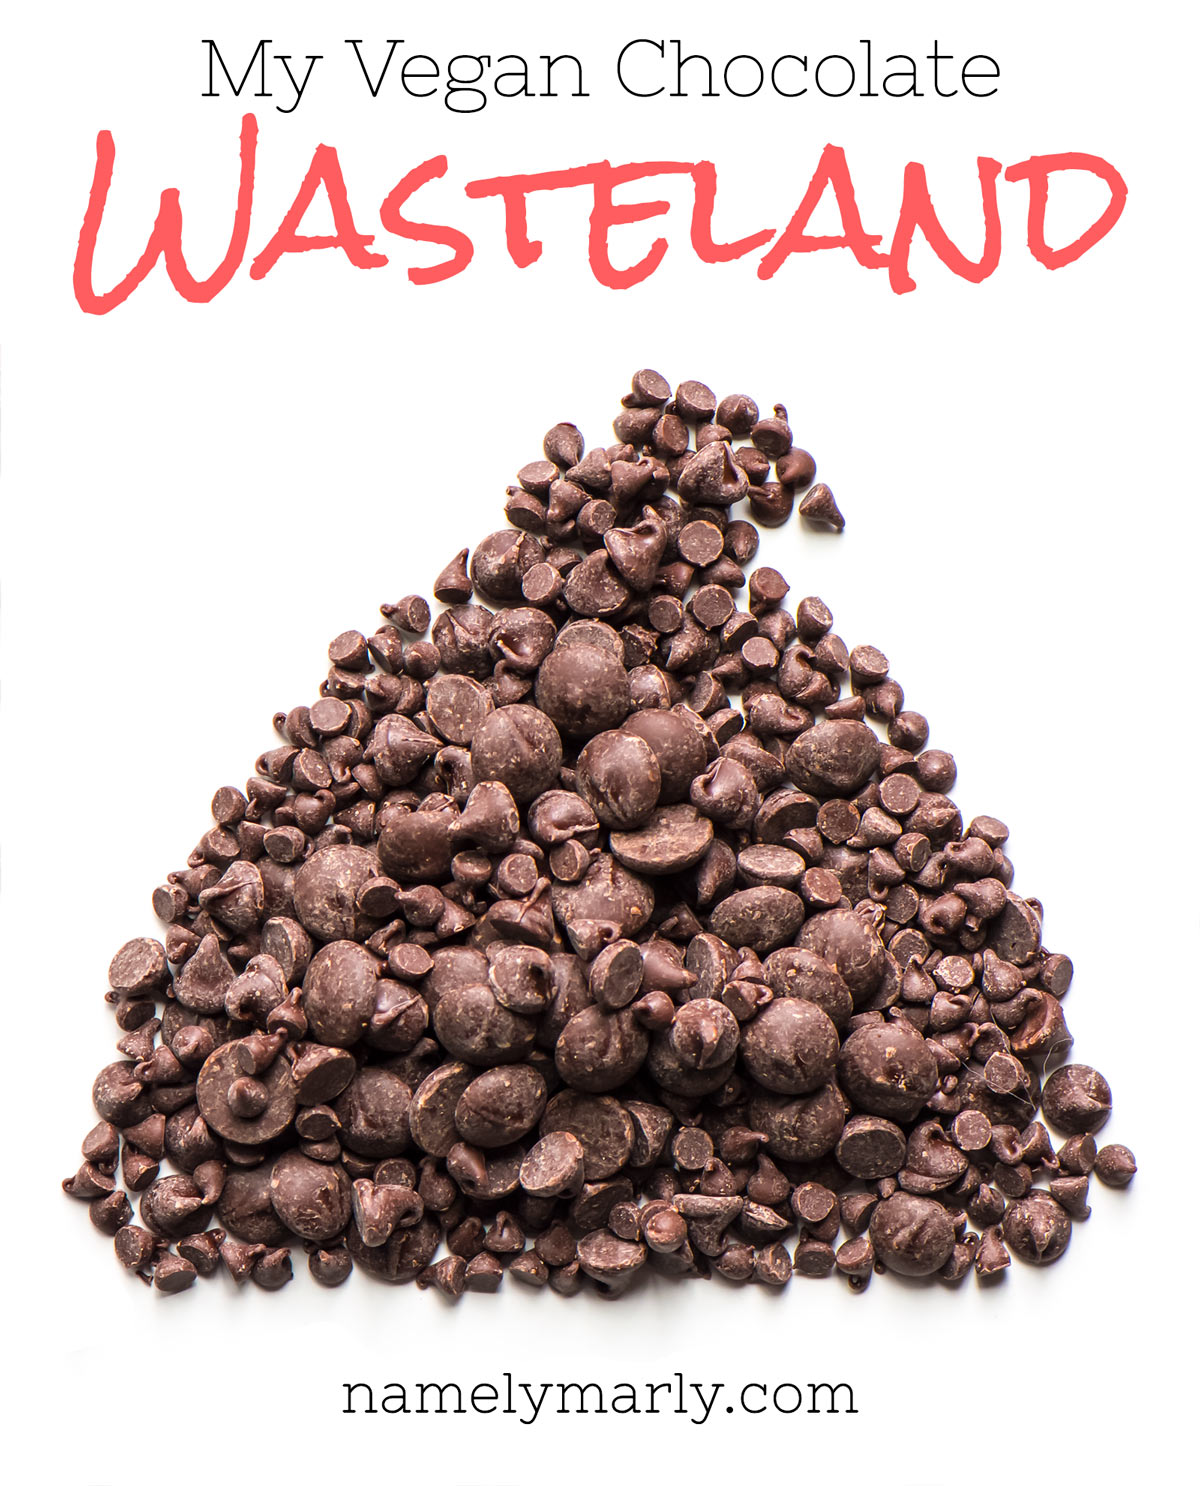 My Vegan Chocolate Wasteland - a tale of how I survived a thrived through a desert of vegan chocolate options!